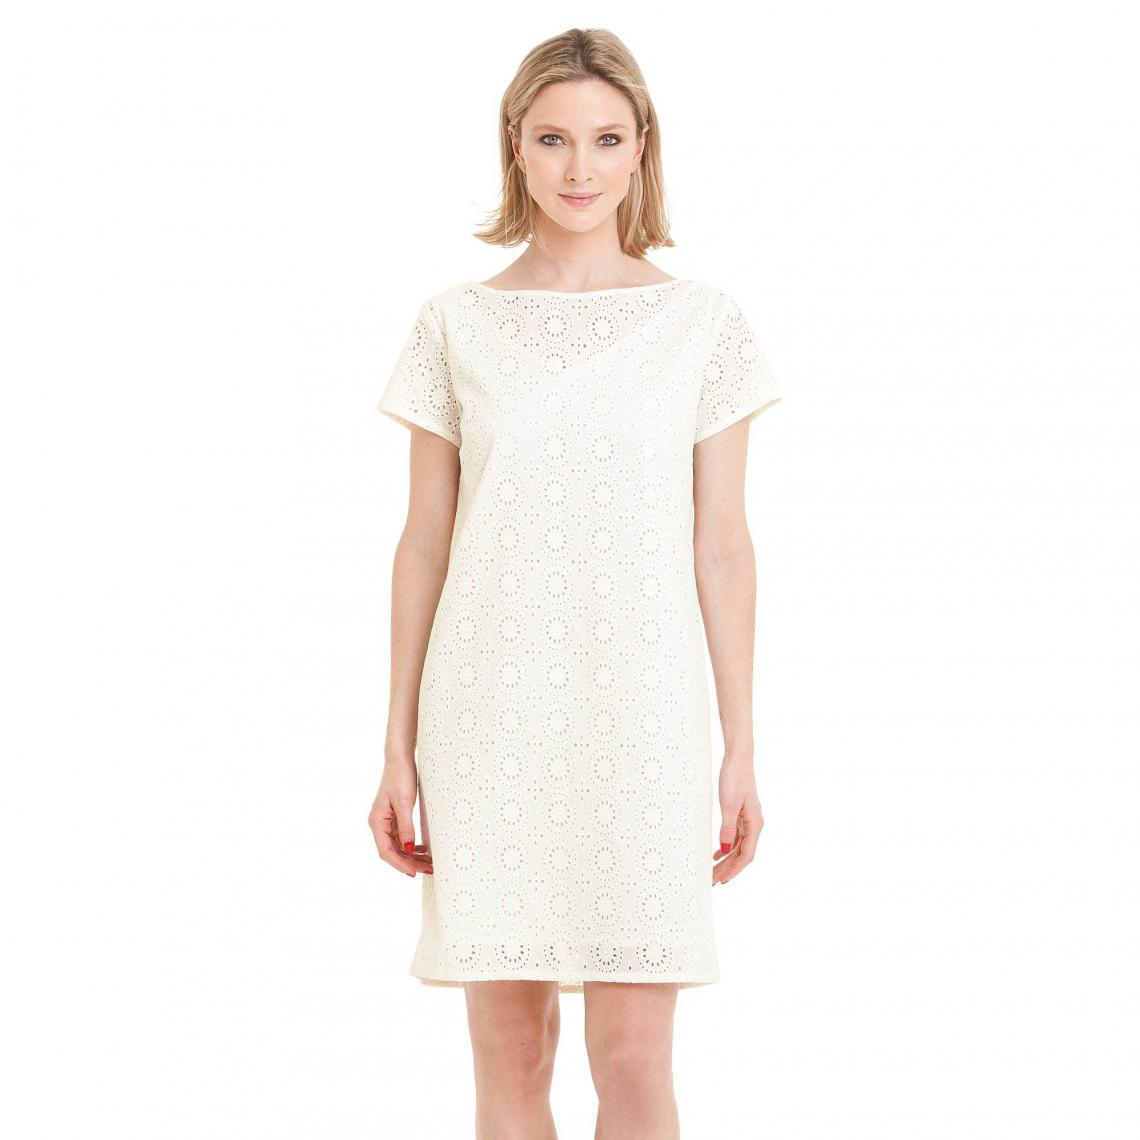 Robe courte manches courtes broderie anglaise femme - Blanc 3 SUISSES  Collection Femme 9c0b51dc612